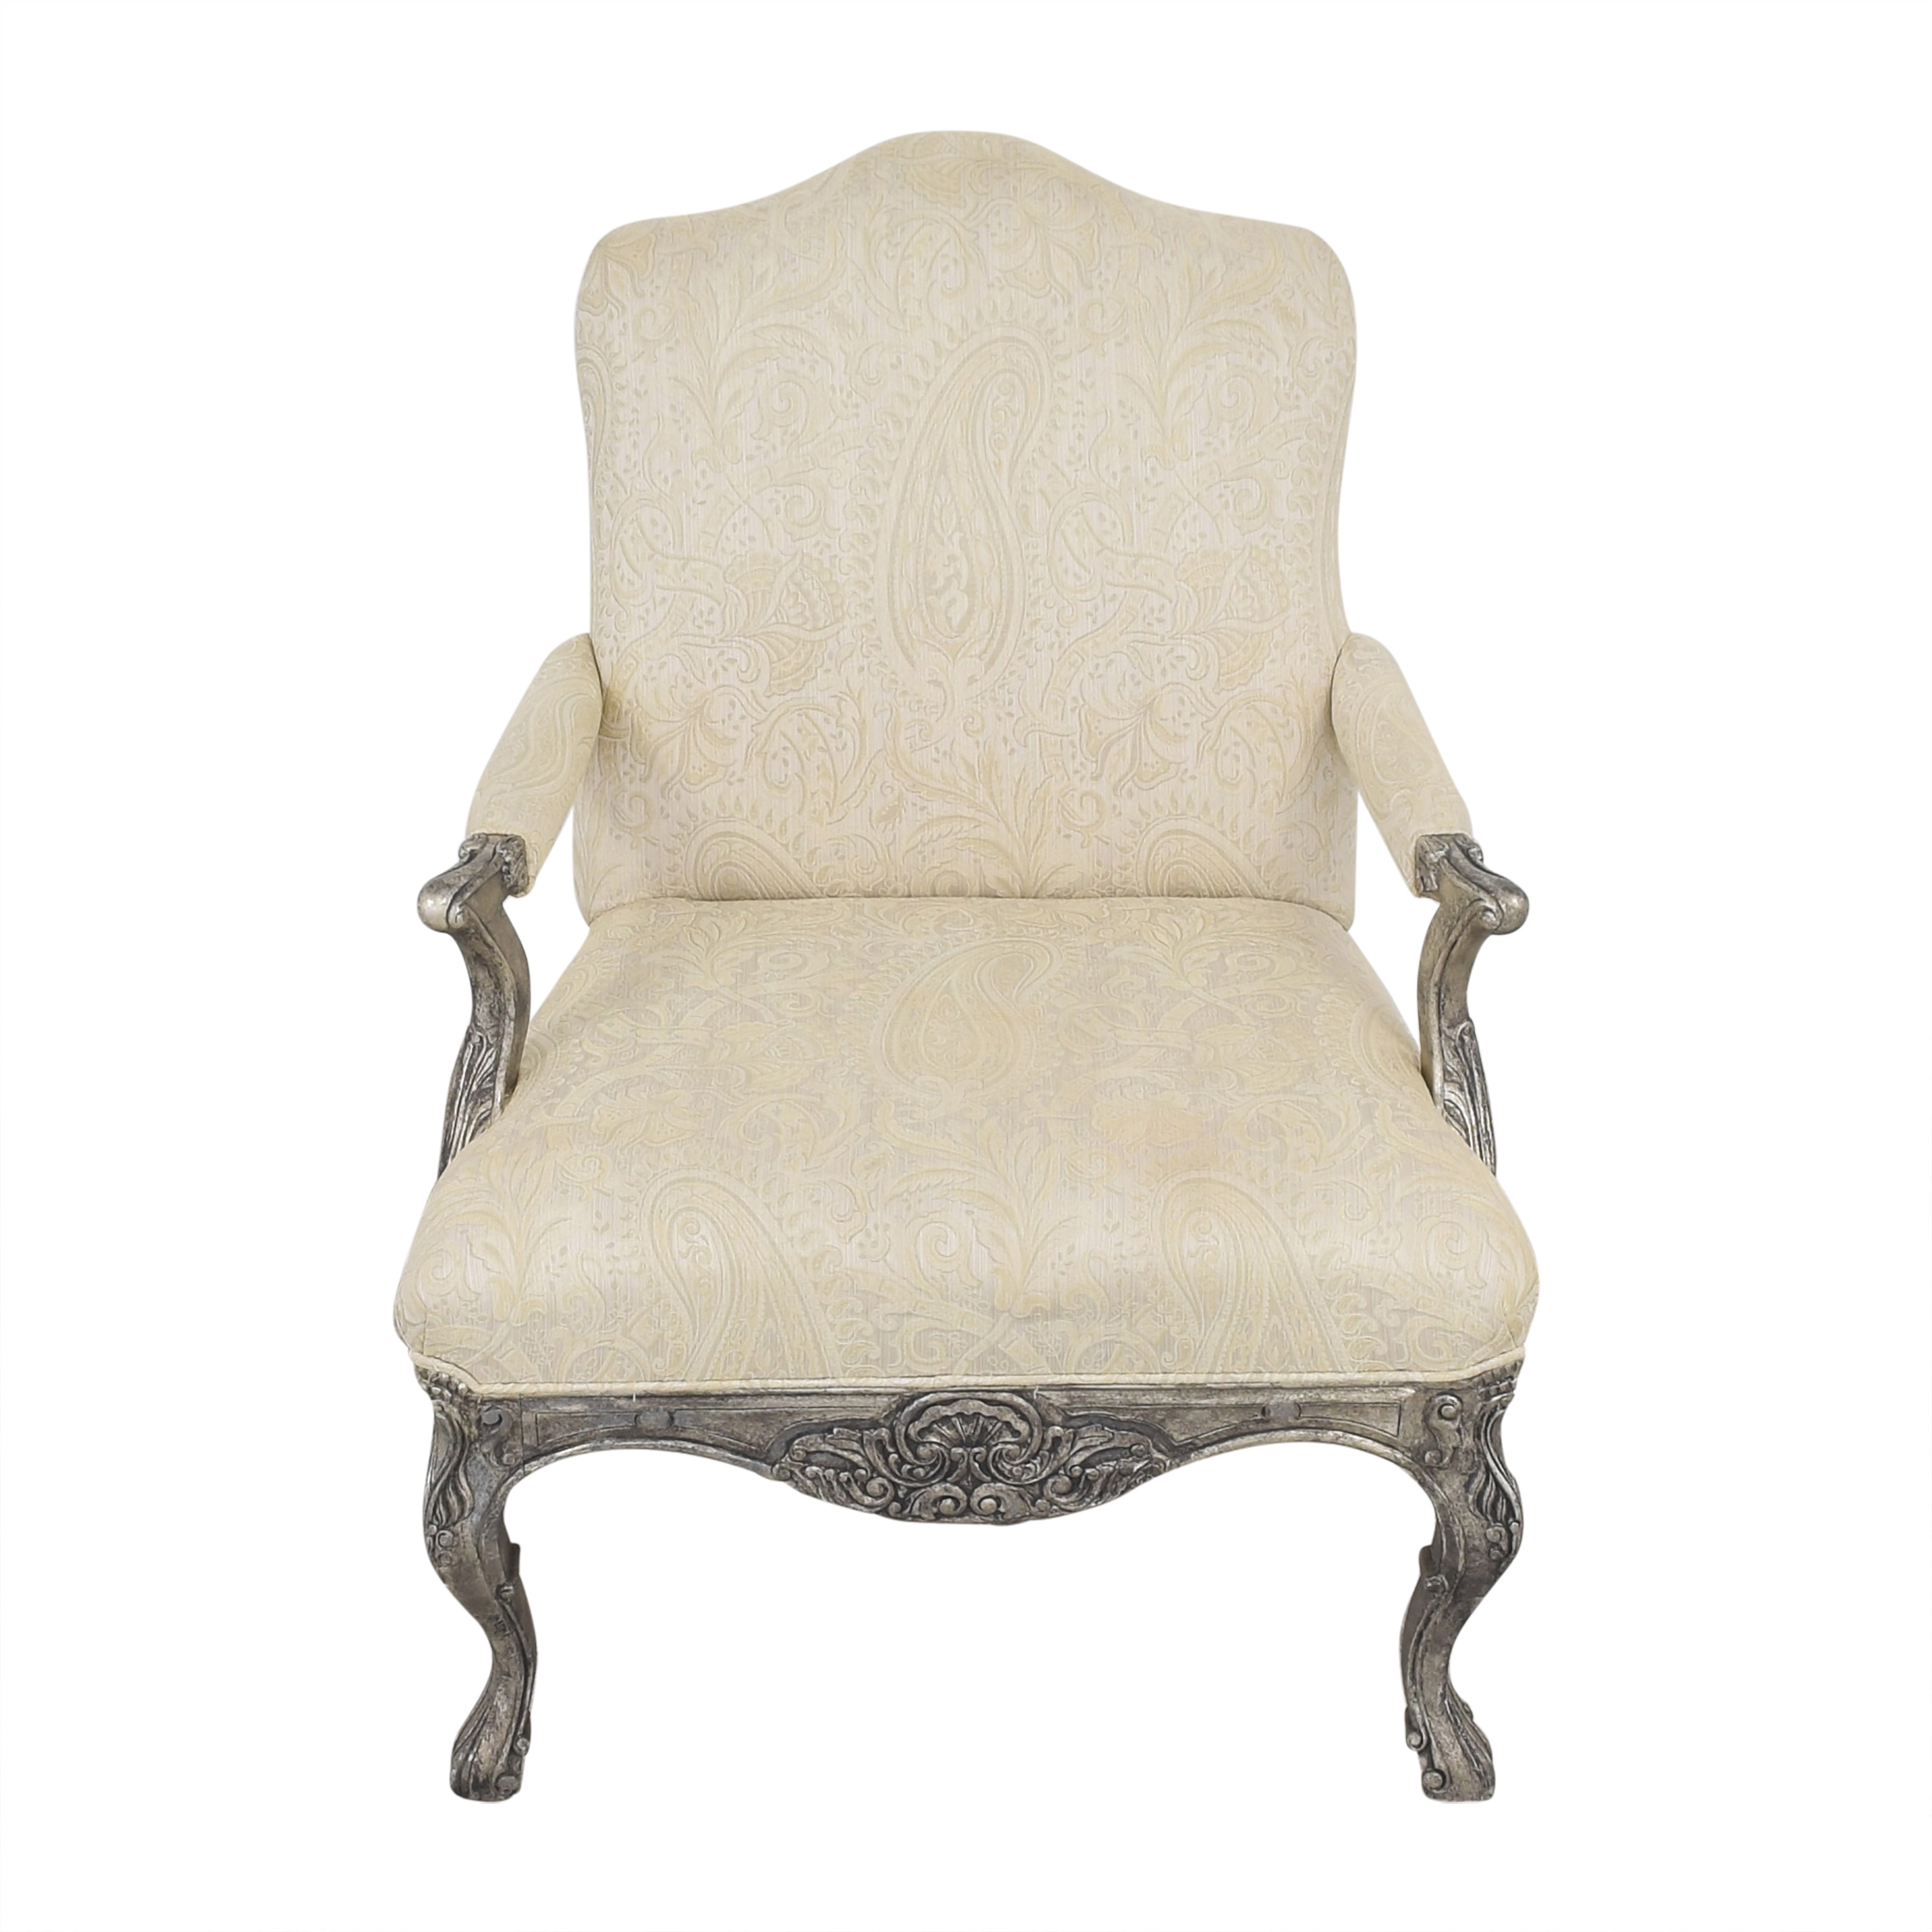 Lillian August Lillian August Arm Chair Accent Chairs